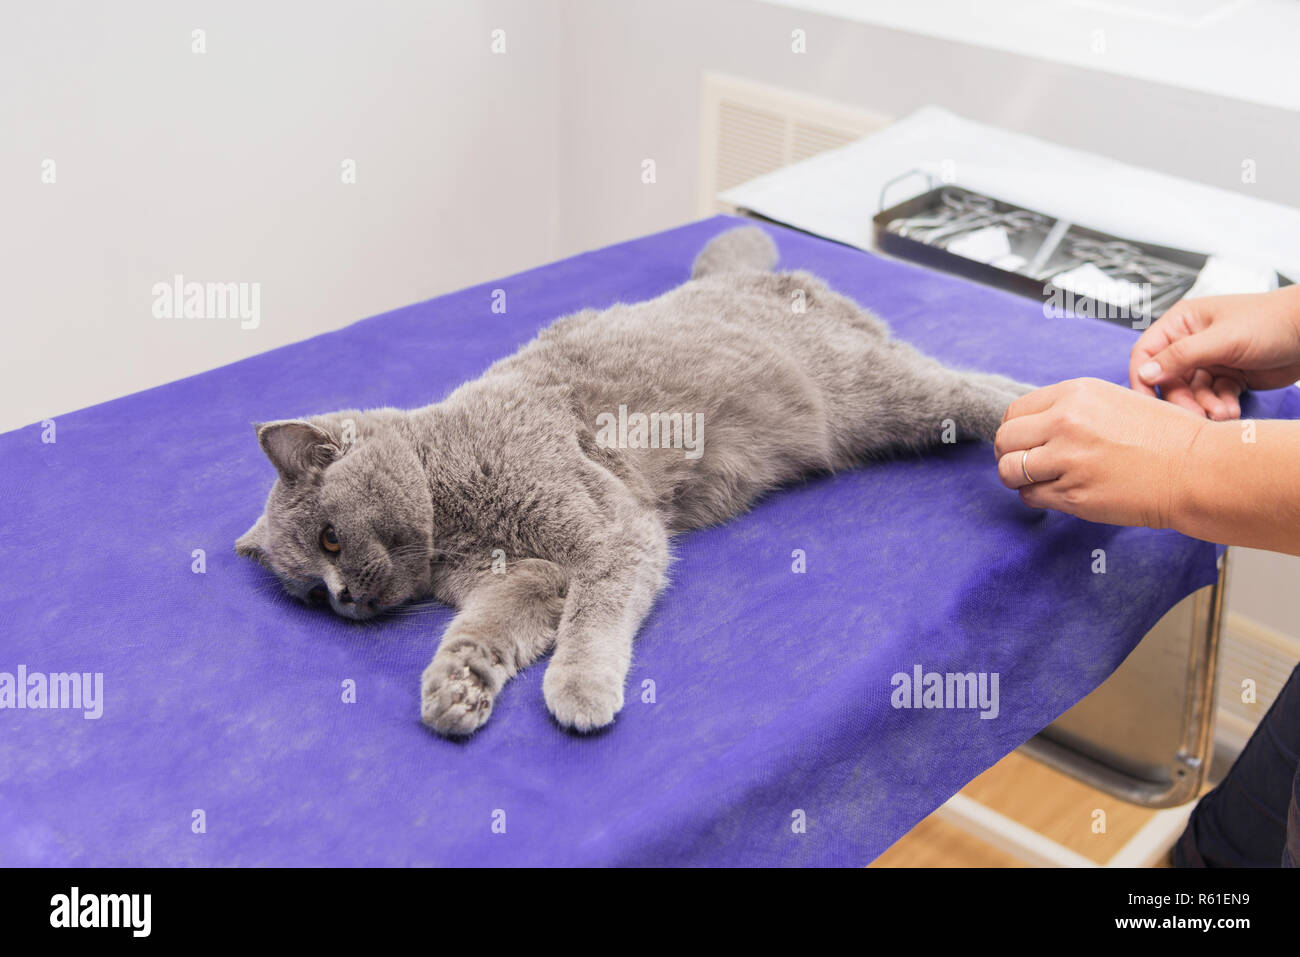 Cat under anesthesia before surgery on an operating table. - Stock Image